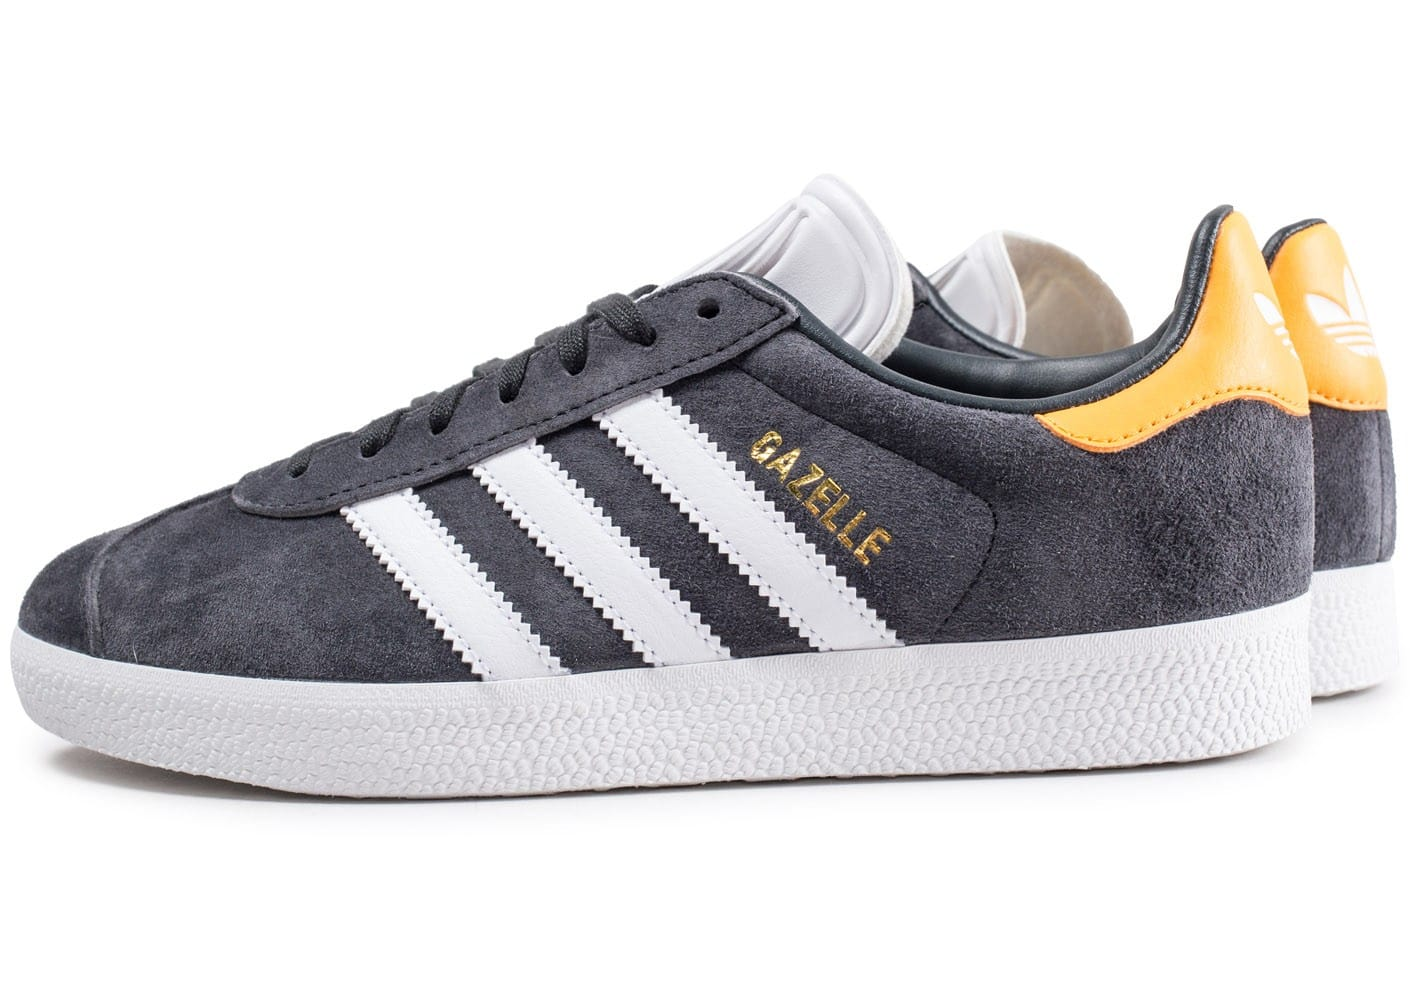 adidas gazelle gris fonc et jaune chaussures adidas chausport. Black Bedroom Furniture Sets. Home Design Ideas